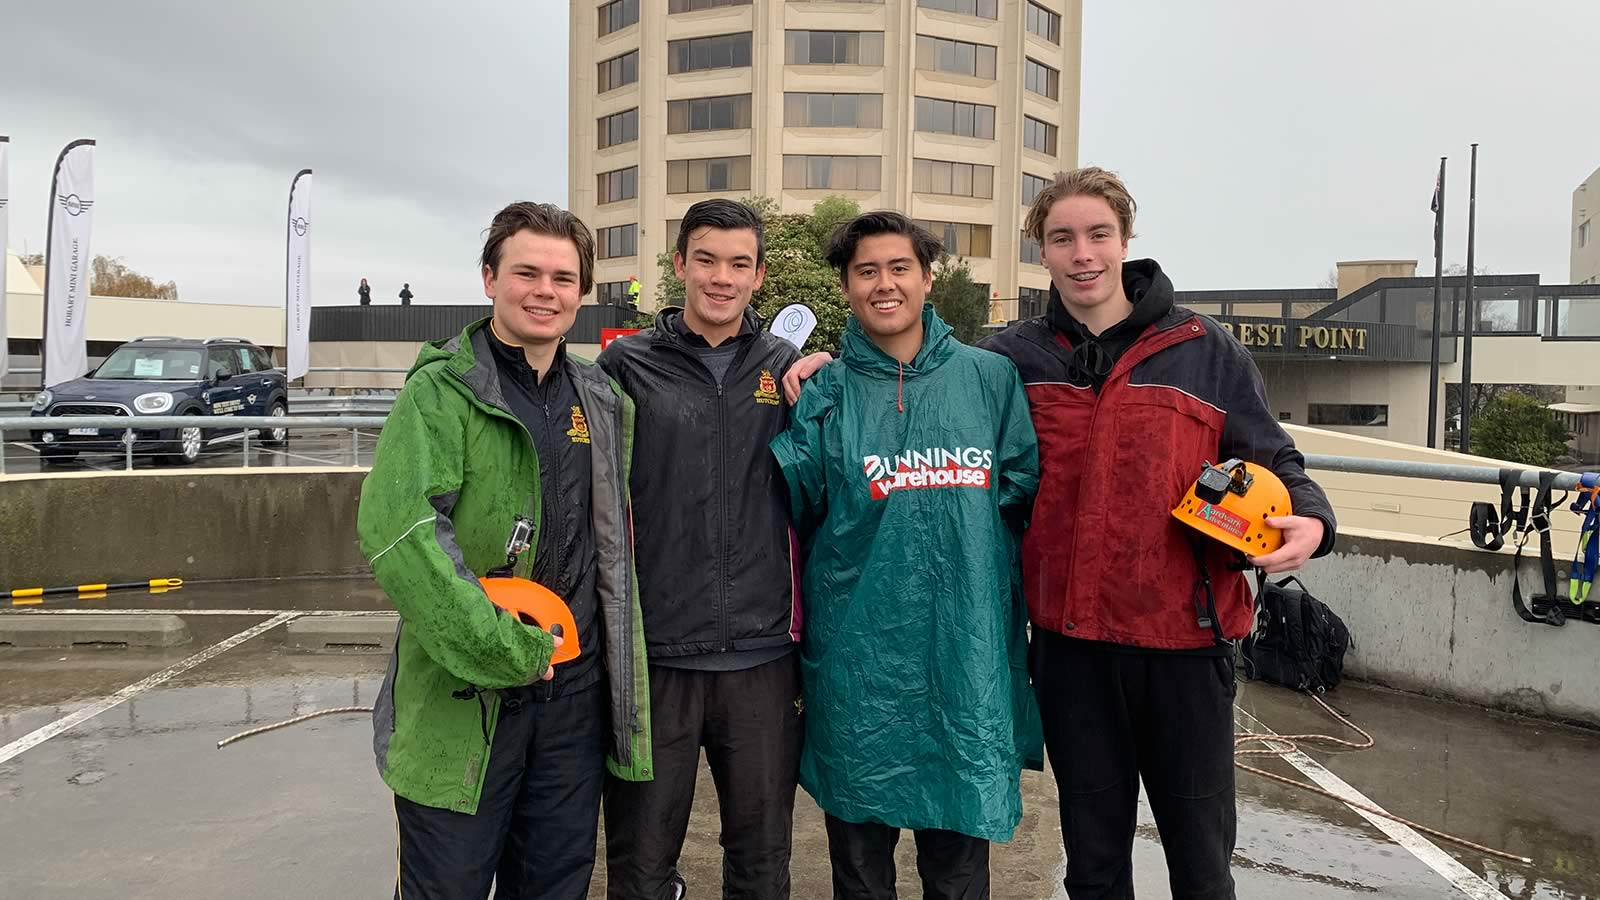 Year 12 Prefects Martyn Szoke, Oliver Burrows-Cheng, Rhys Evans and Billy Blackett.